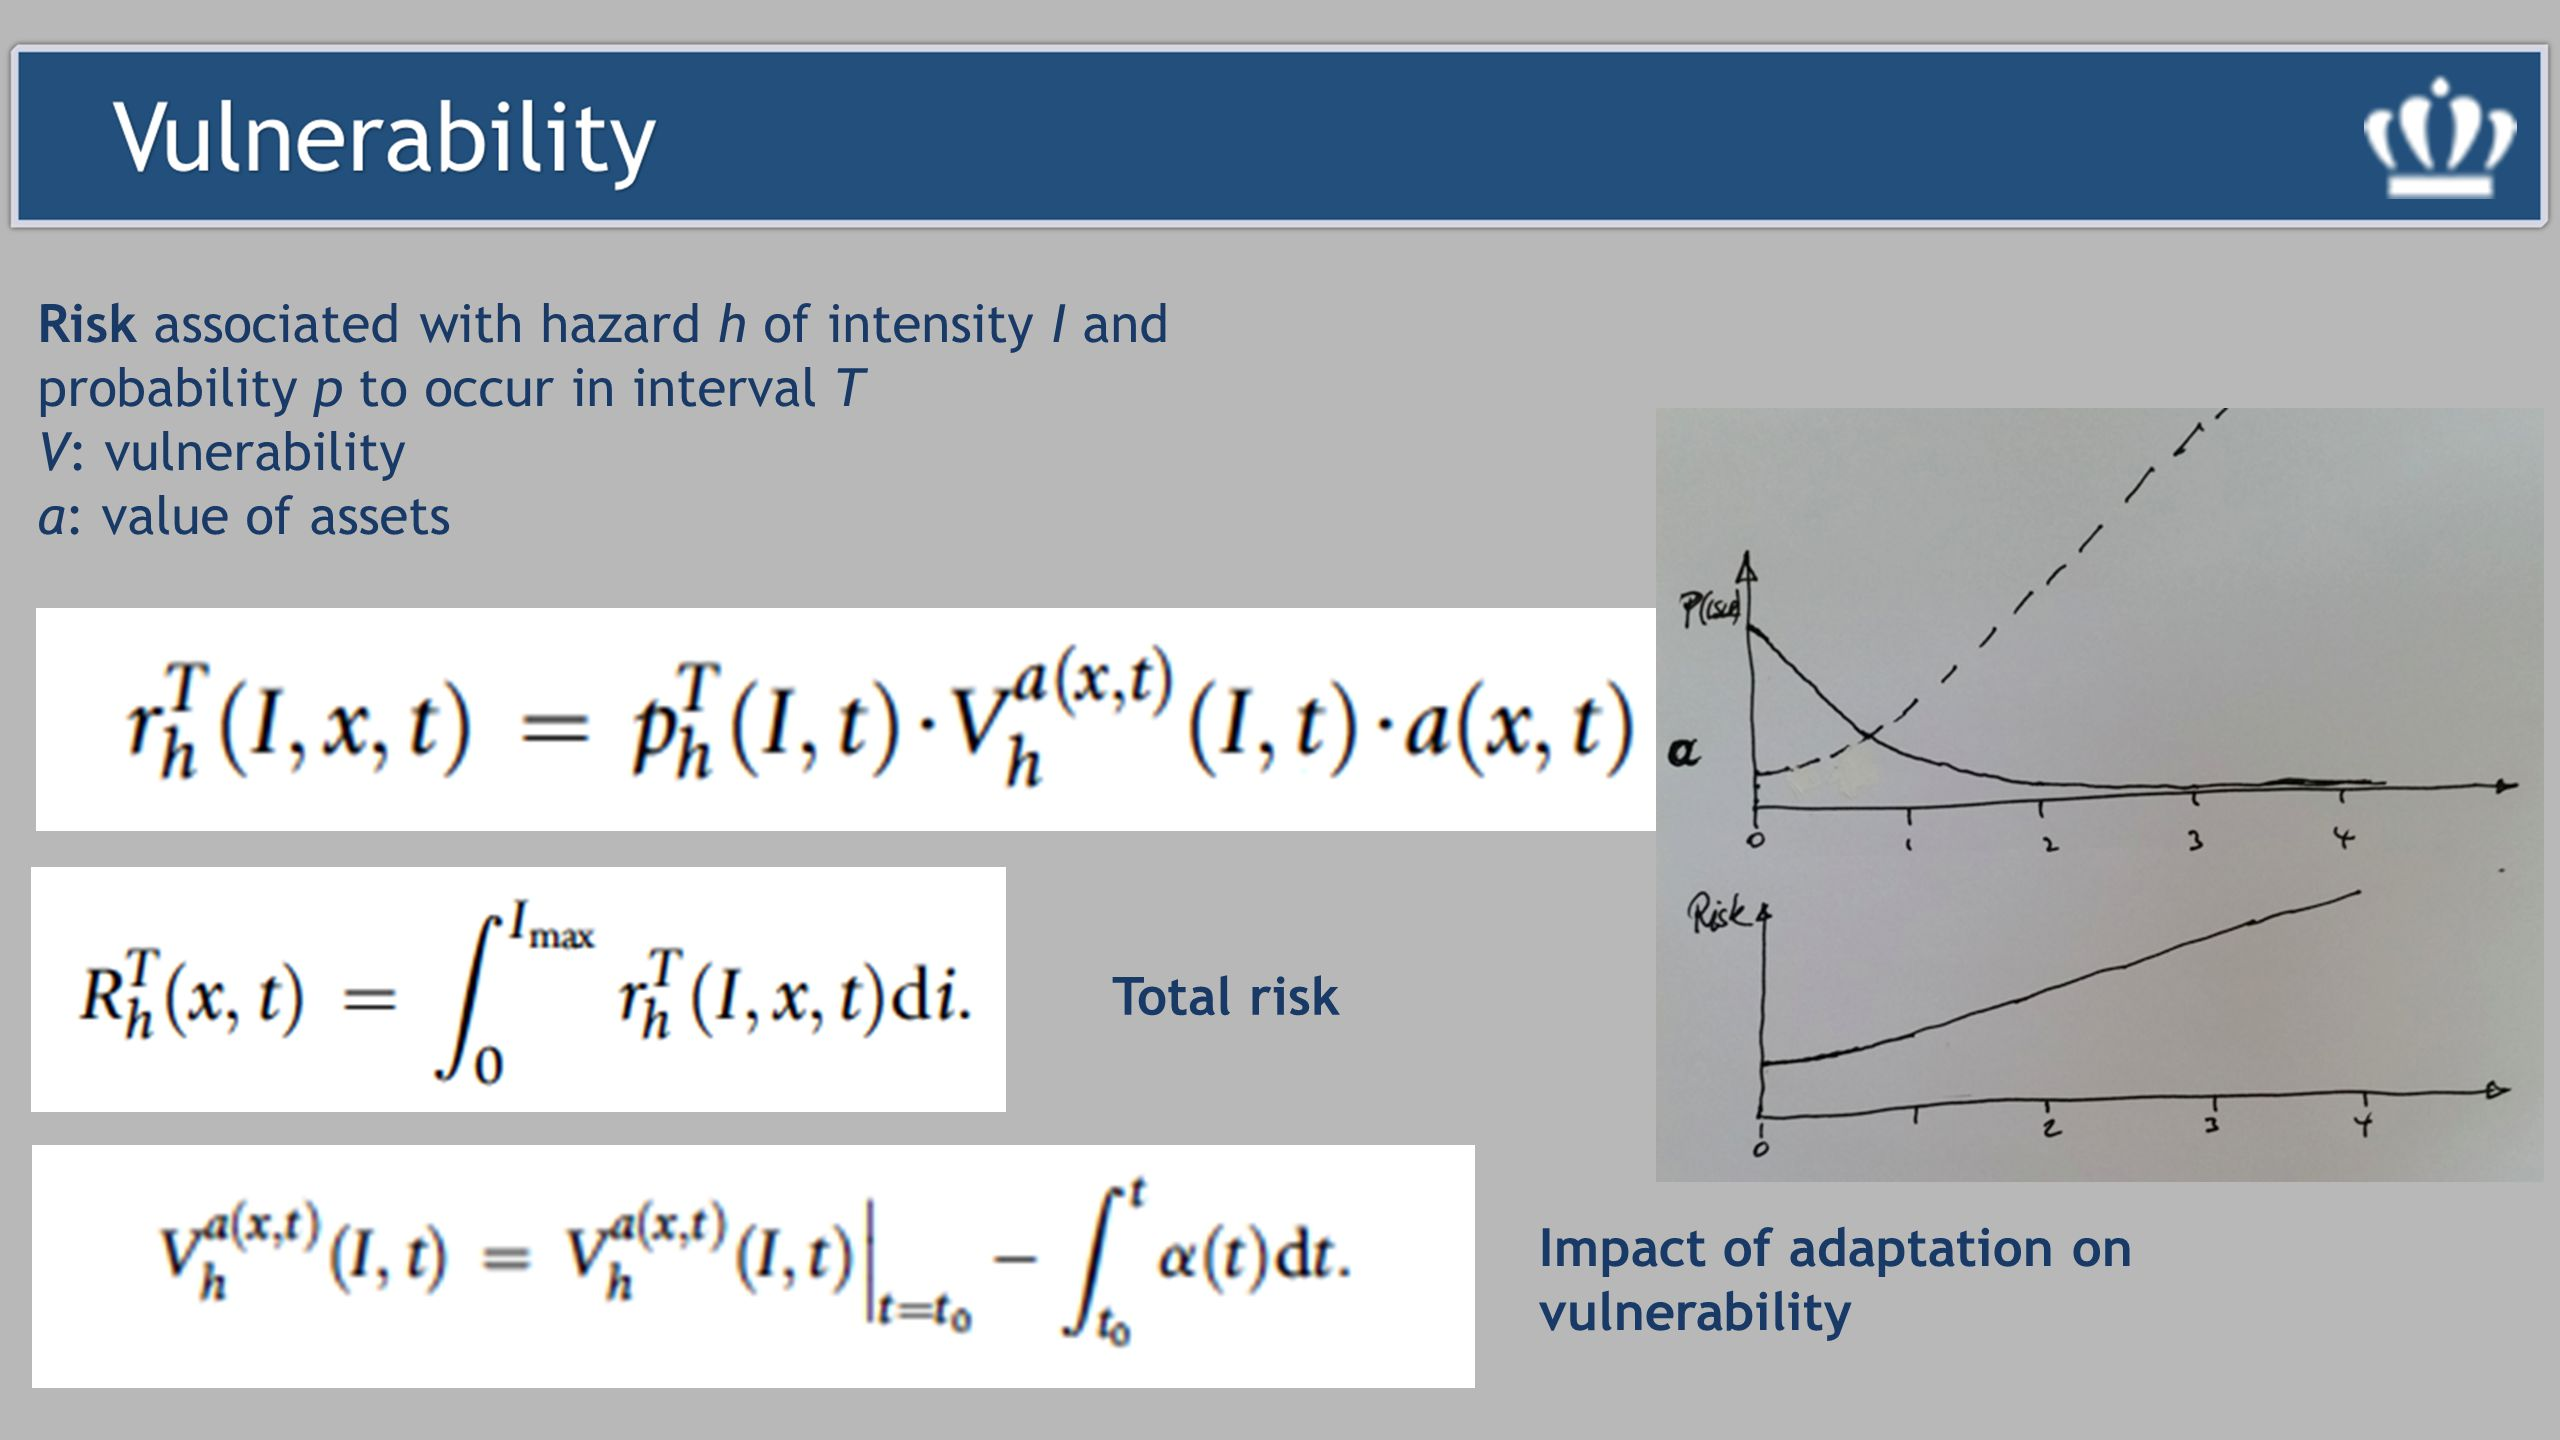 Risk associated with hazard h of intensity I and probability p to occur in interval T V: vulnerability a: value of assets Total risk Impact of adaptation on vulnerability